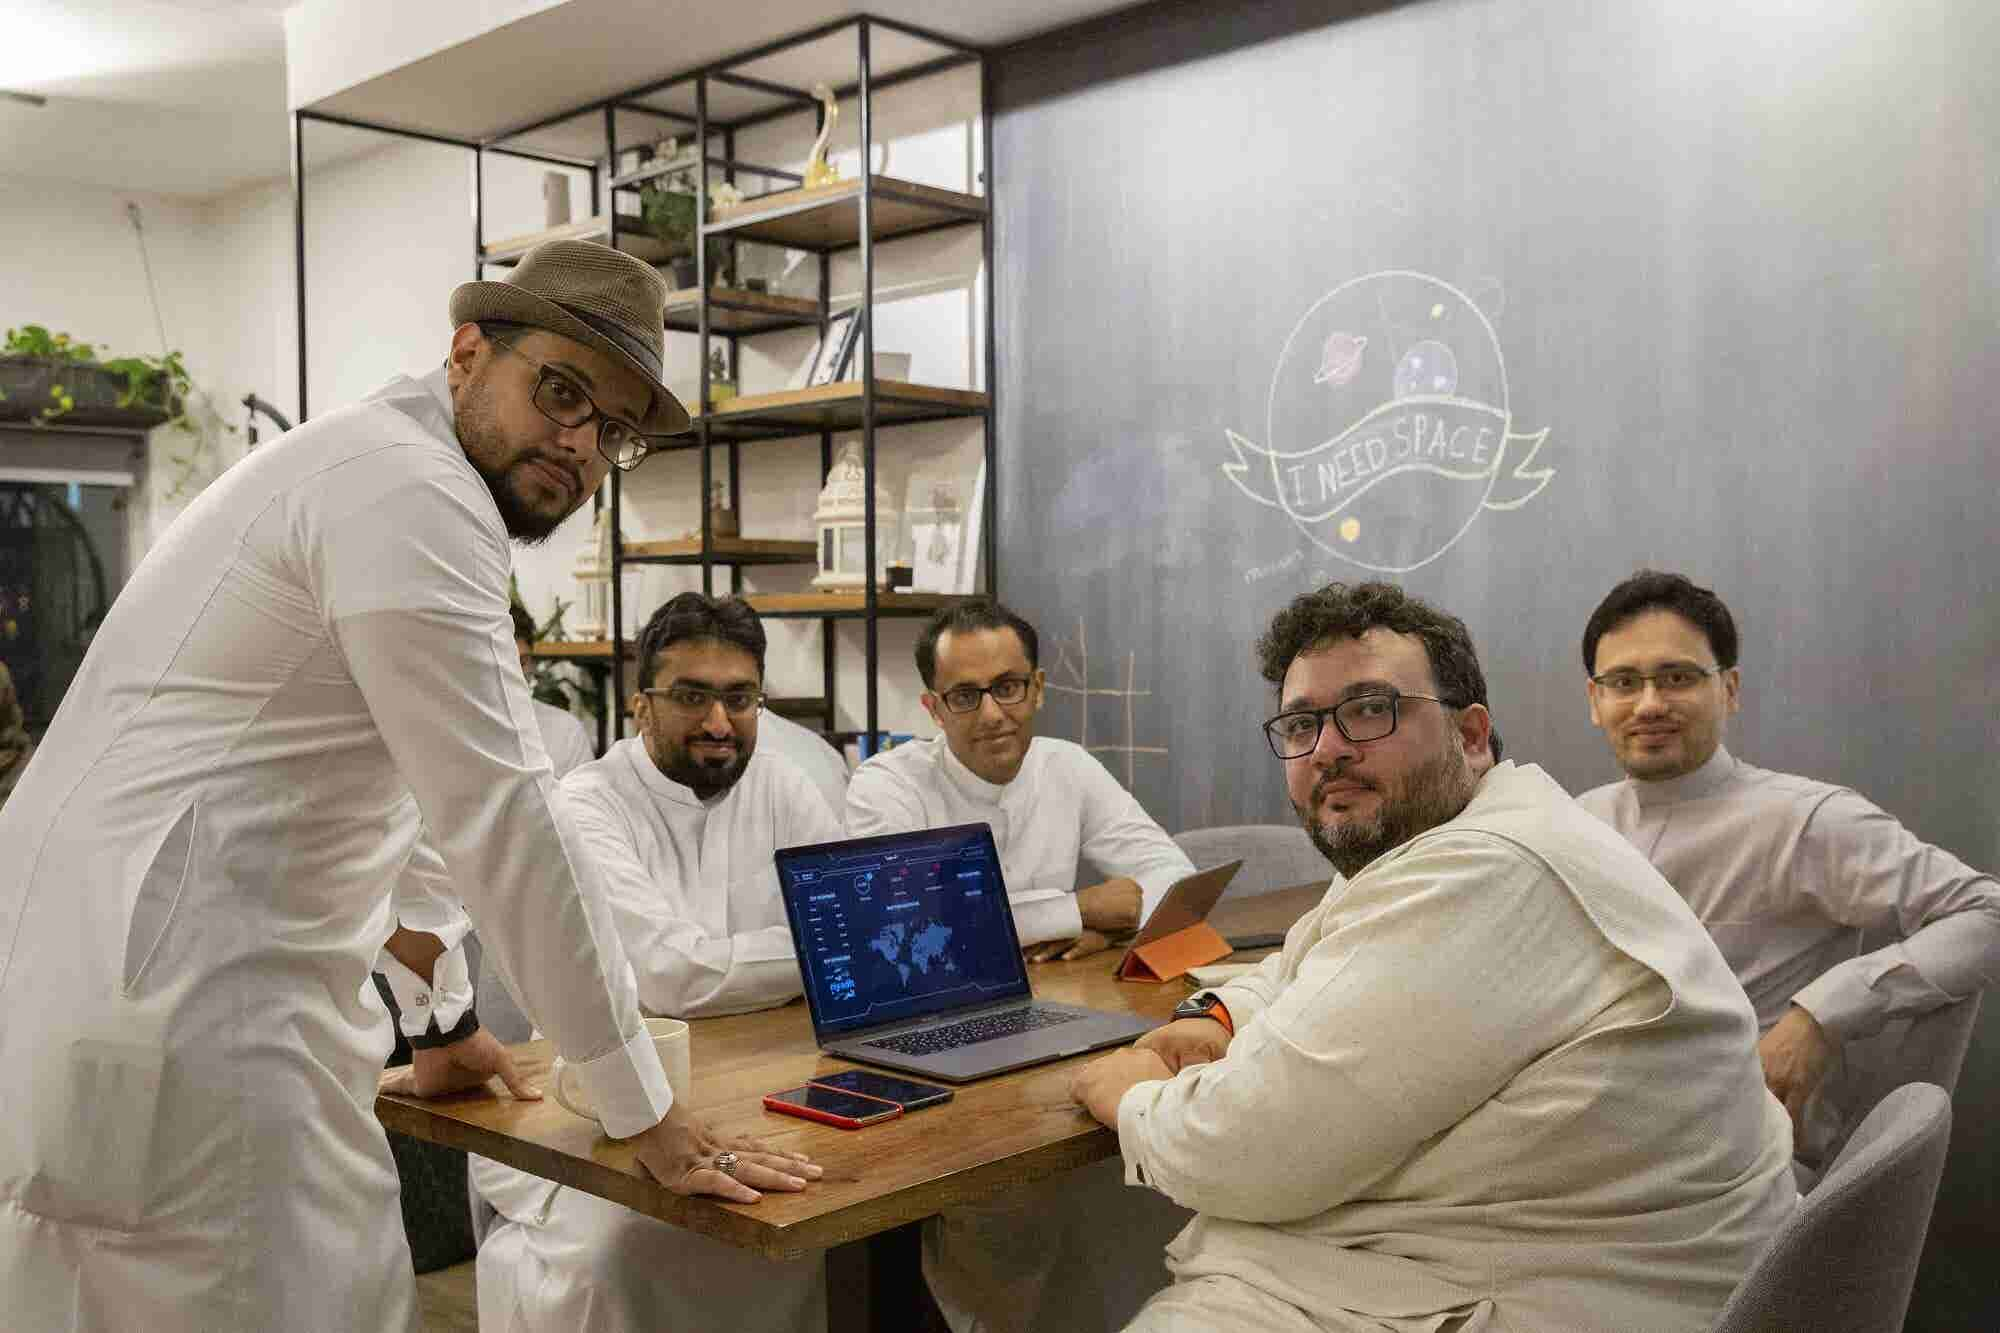 KSA Startup Lucidya Wants To Empower Businesses By Providing Real-Time Analytics For Their Social Media Platforms With Its AI-Powered Tools